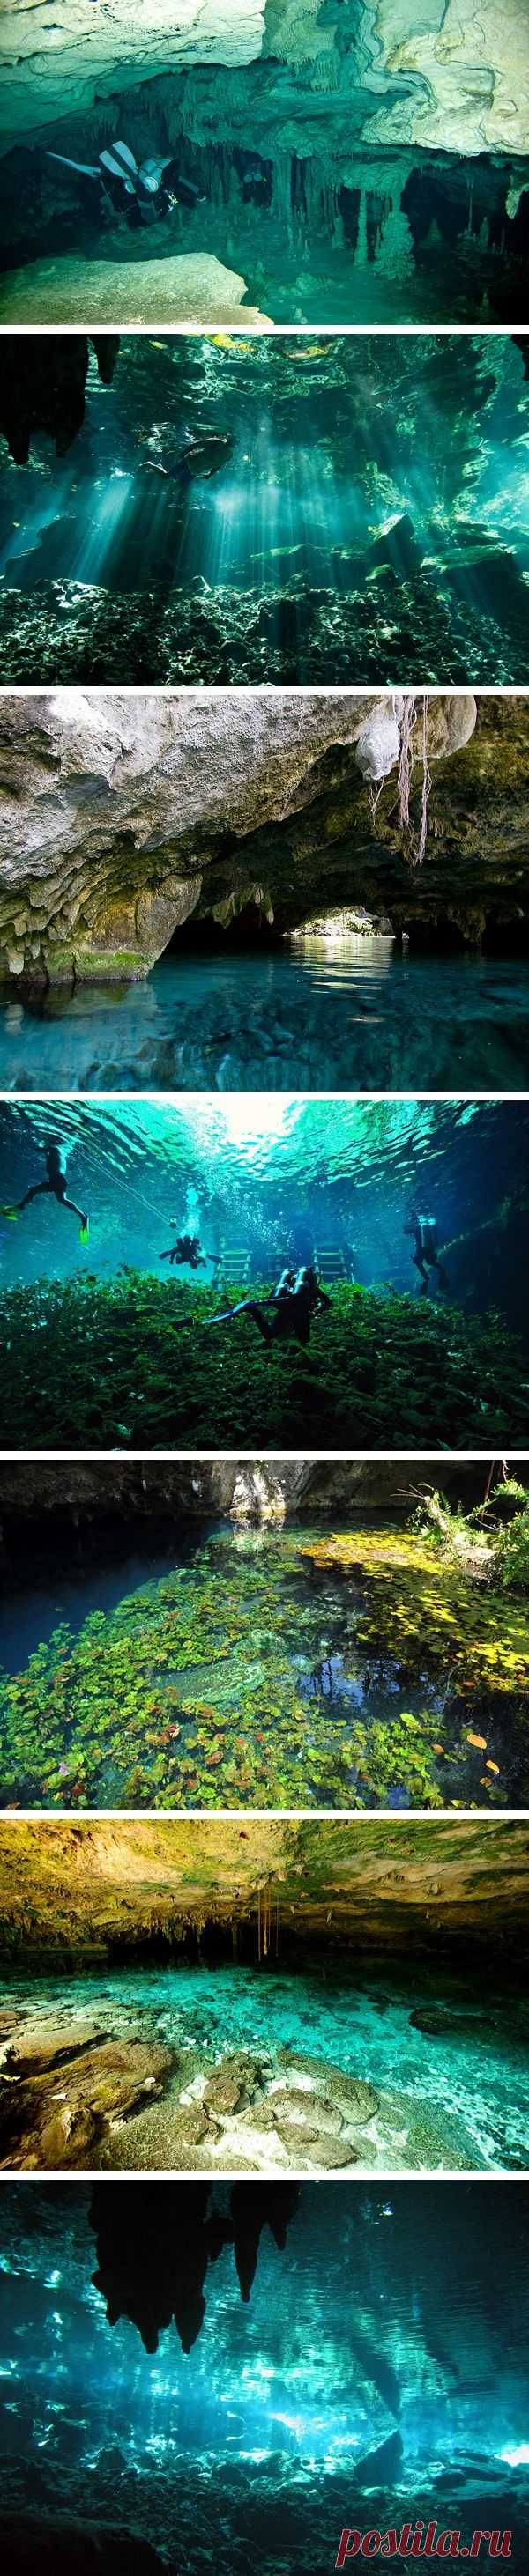 Fascinating diving in caves of Mexico